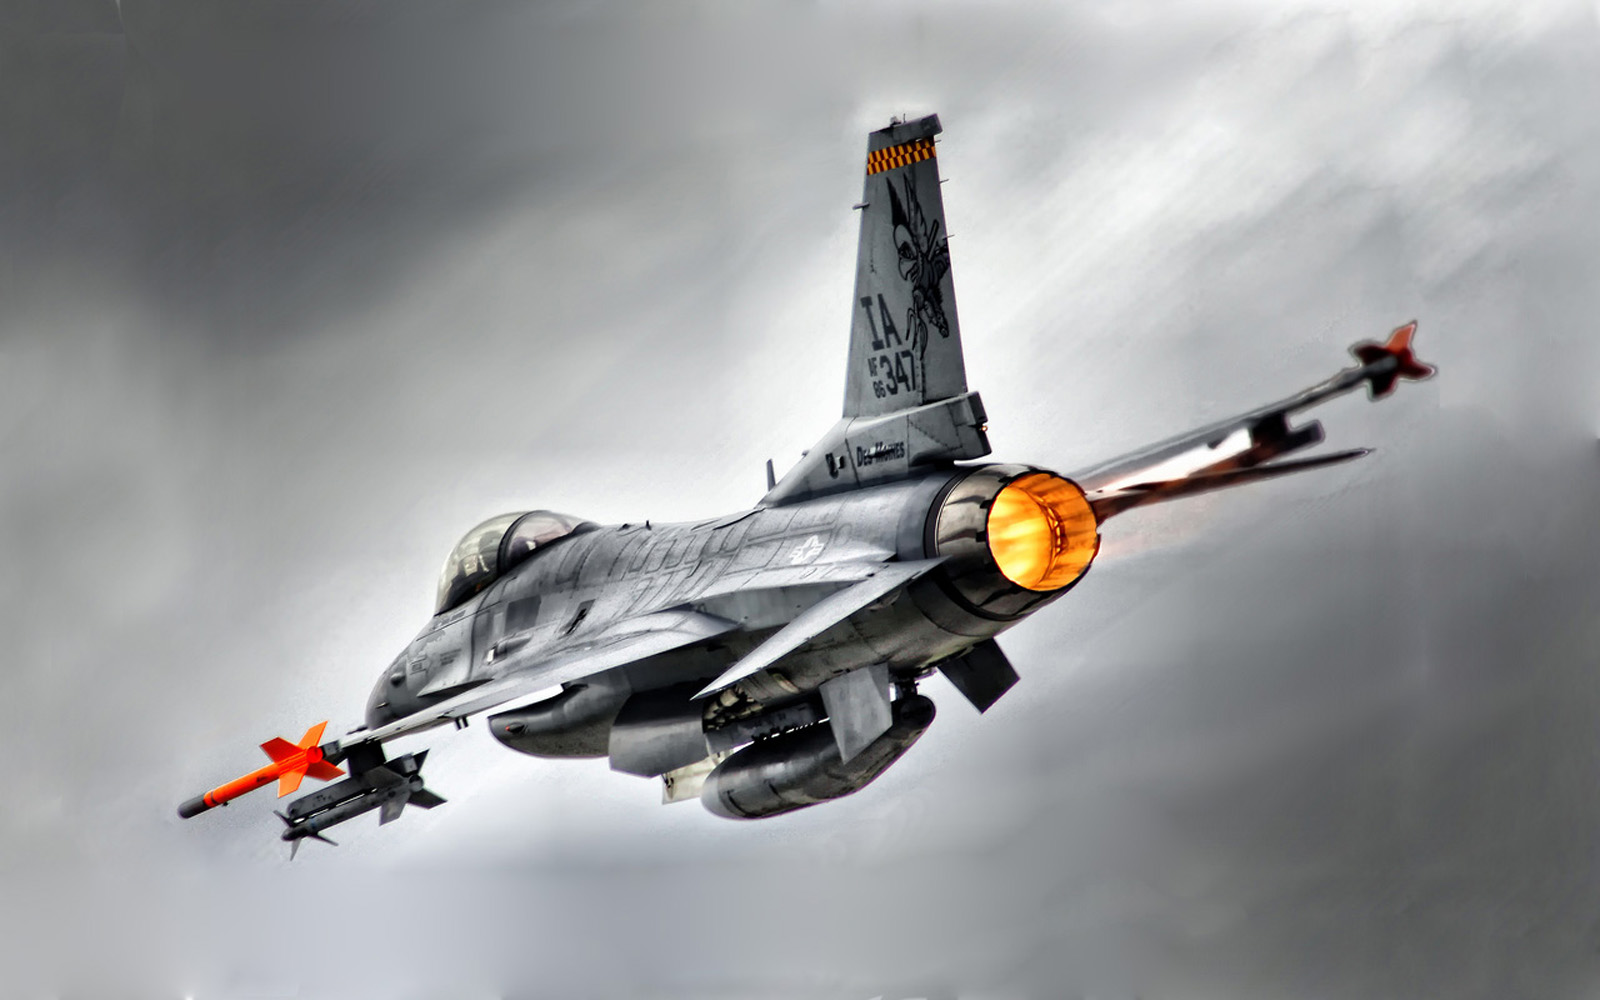 16 Fighting Falcon HD Wallpapers Download Free Wallpapers in HD for 1623